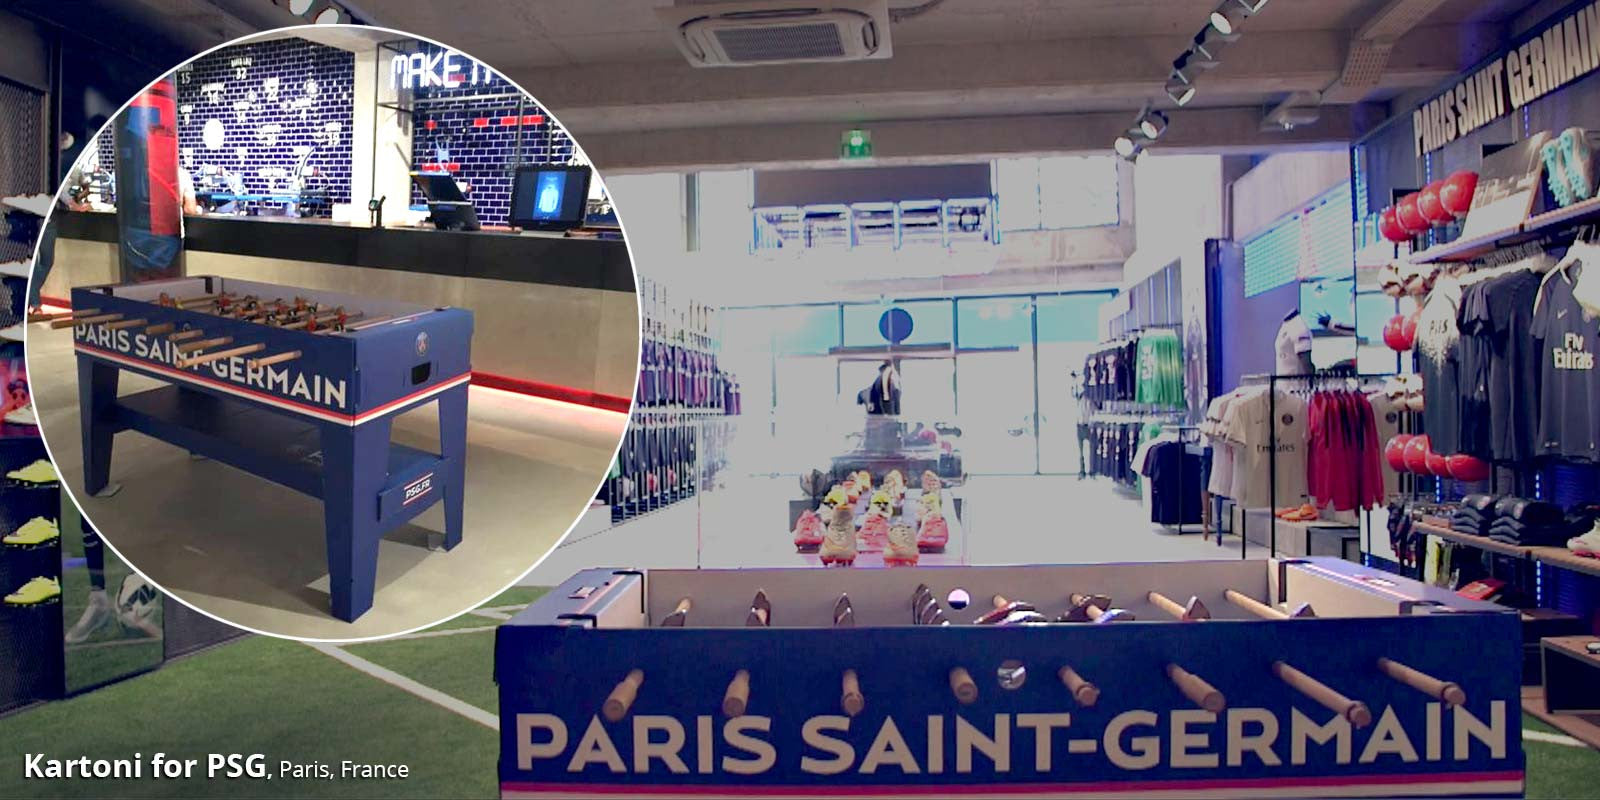 Kartoni foosball table for PSG!